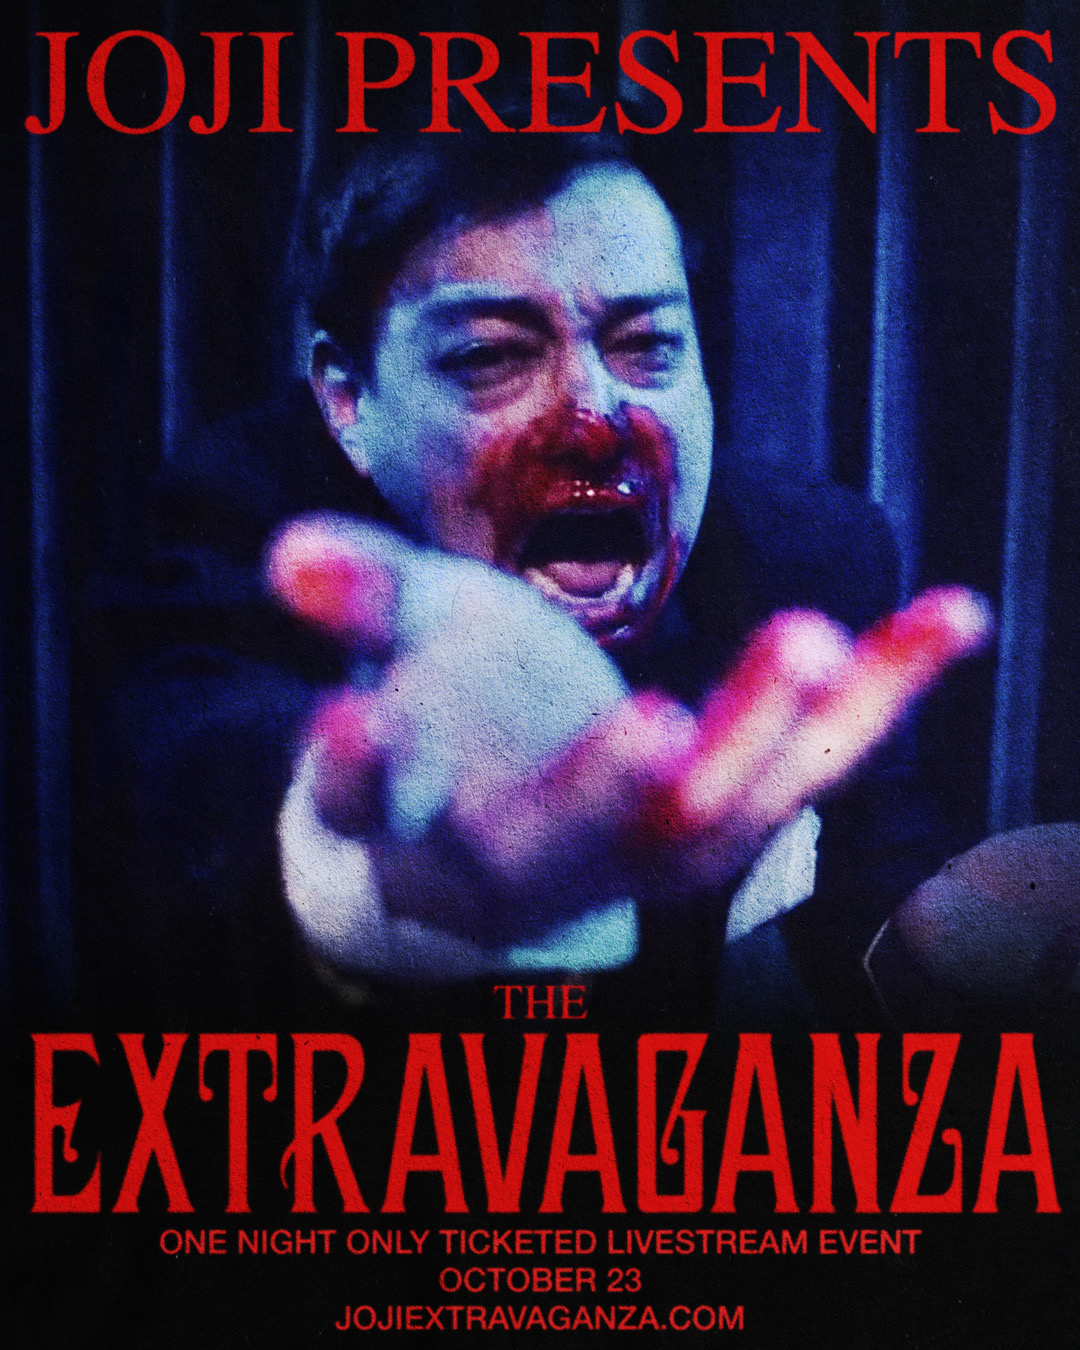 JOJI ANNOUNCES HIS ONE NIGHT ONLY EVENT: THE EXTRAVAGANZA  NEW ALBUM NECTAR IS OUT NOW